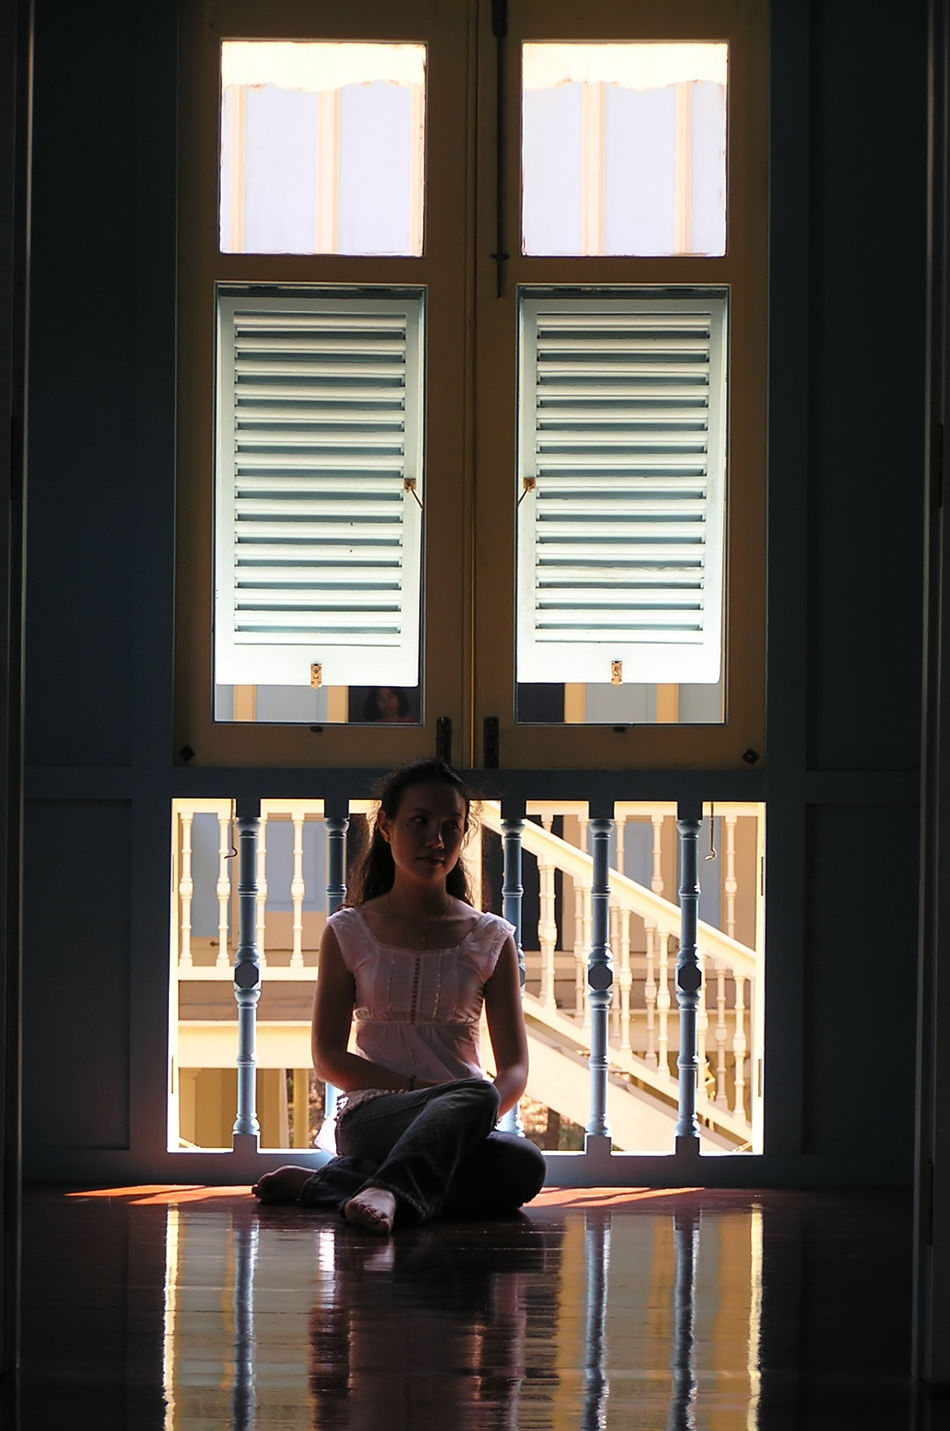 Cross-legged Indoors  One Person One Woman Only Relaxation Shadow Sitting Window